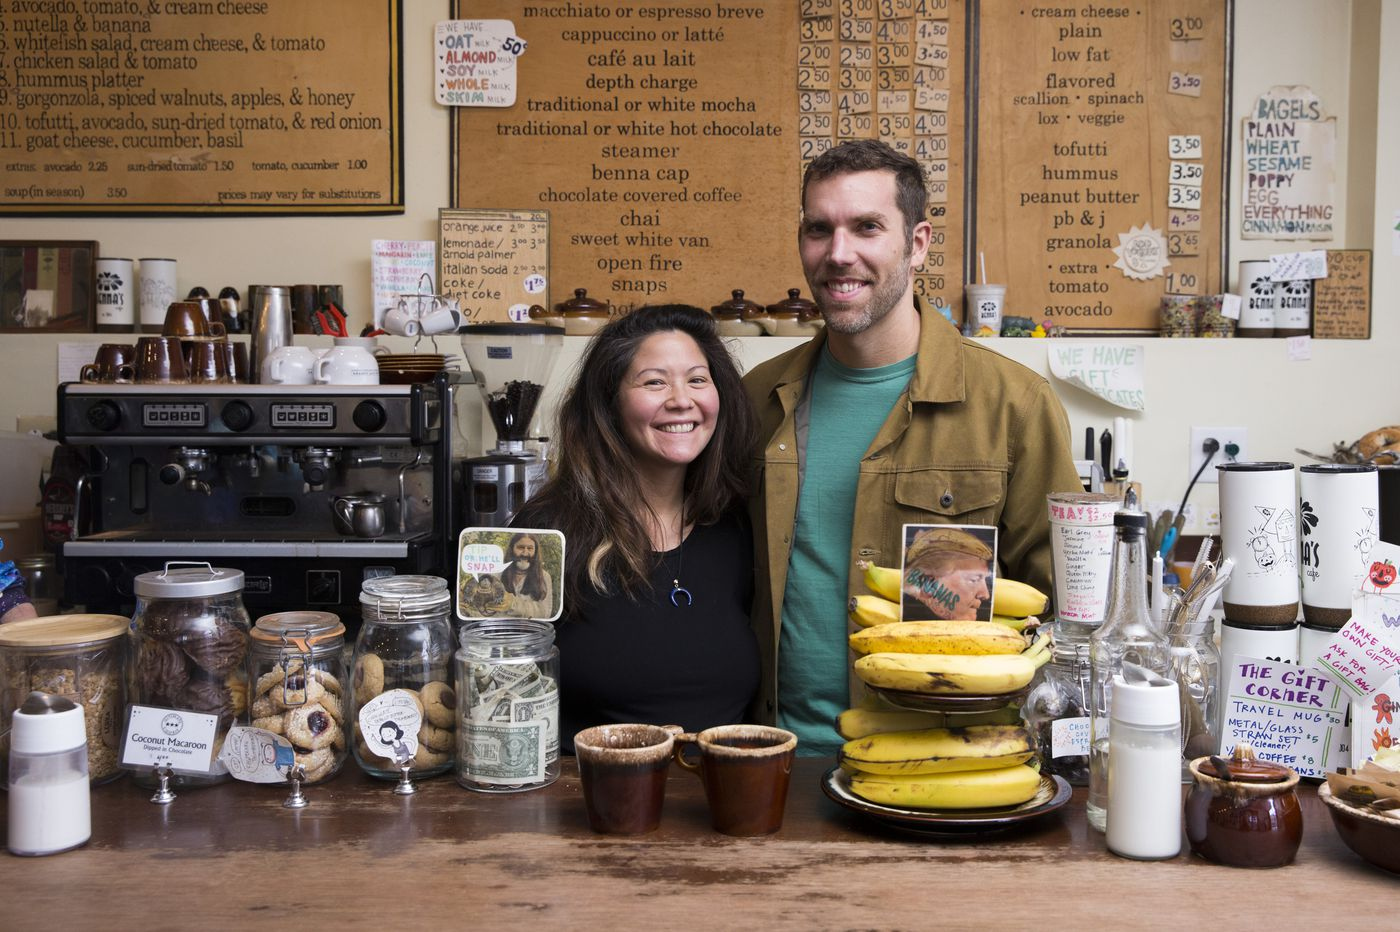 Want to fall in love? Go to this South Philly coffee shop.